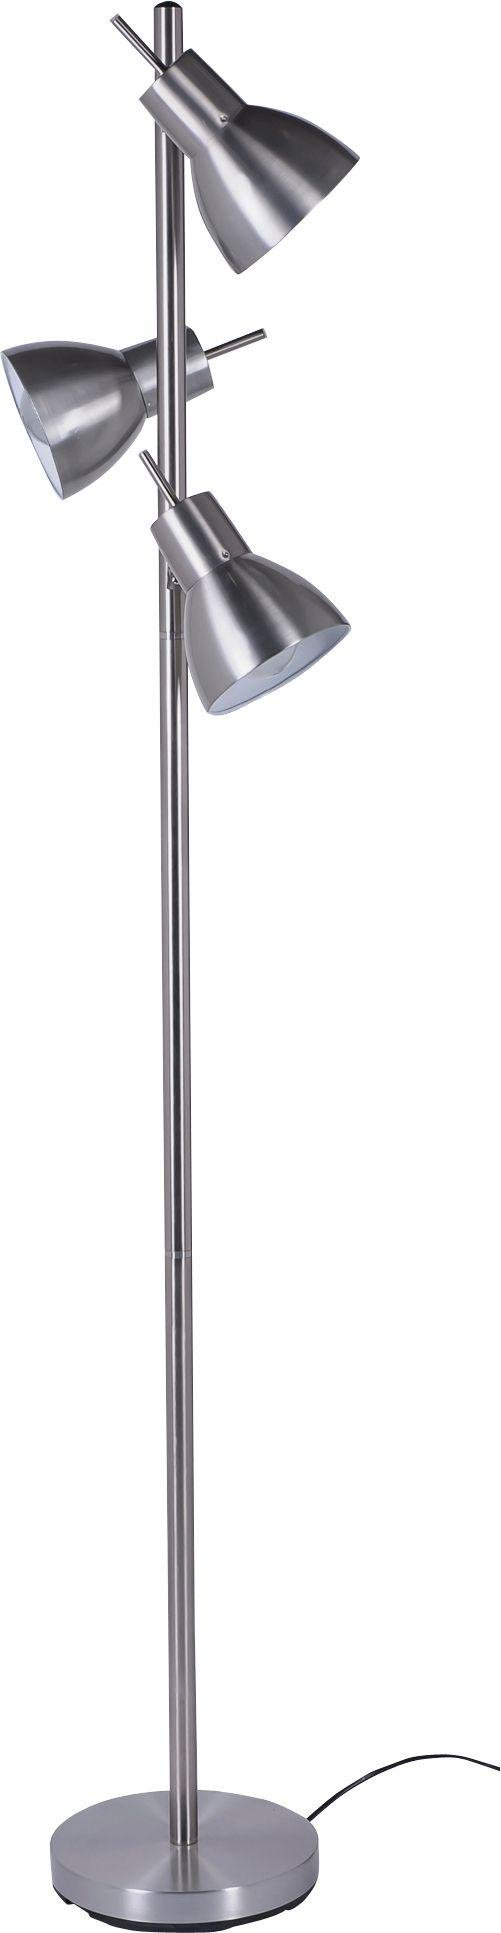 Argos Home Fraser Trio Spotlight Floor Lamp - Silver